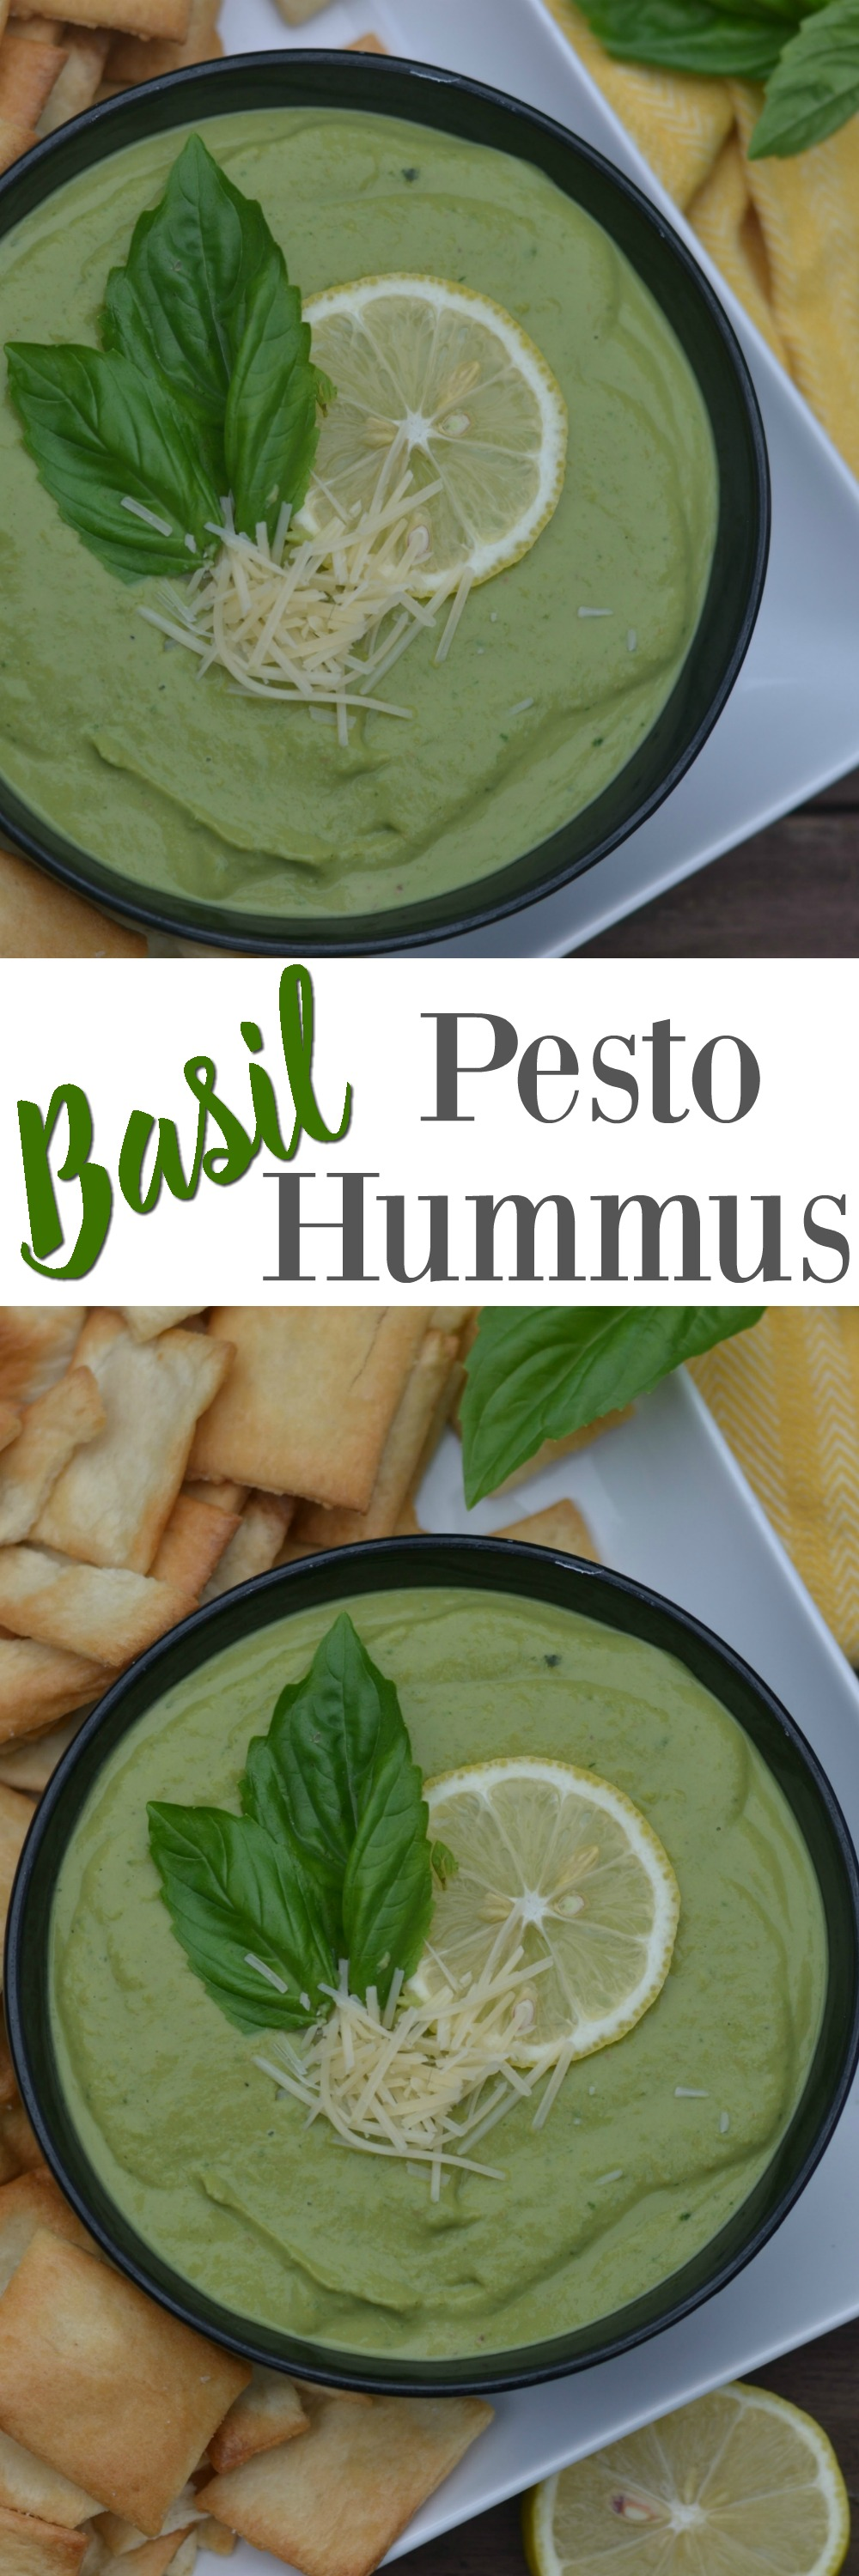 Basil Pesto Hummus. Copycat Zoes Kitchen Basil Pesto Hummus. Best hummus ever!